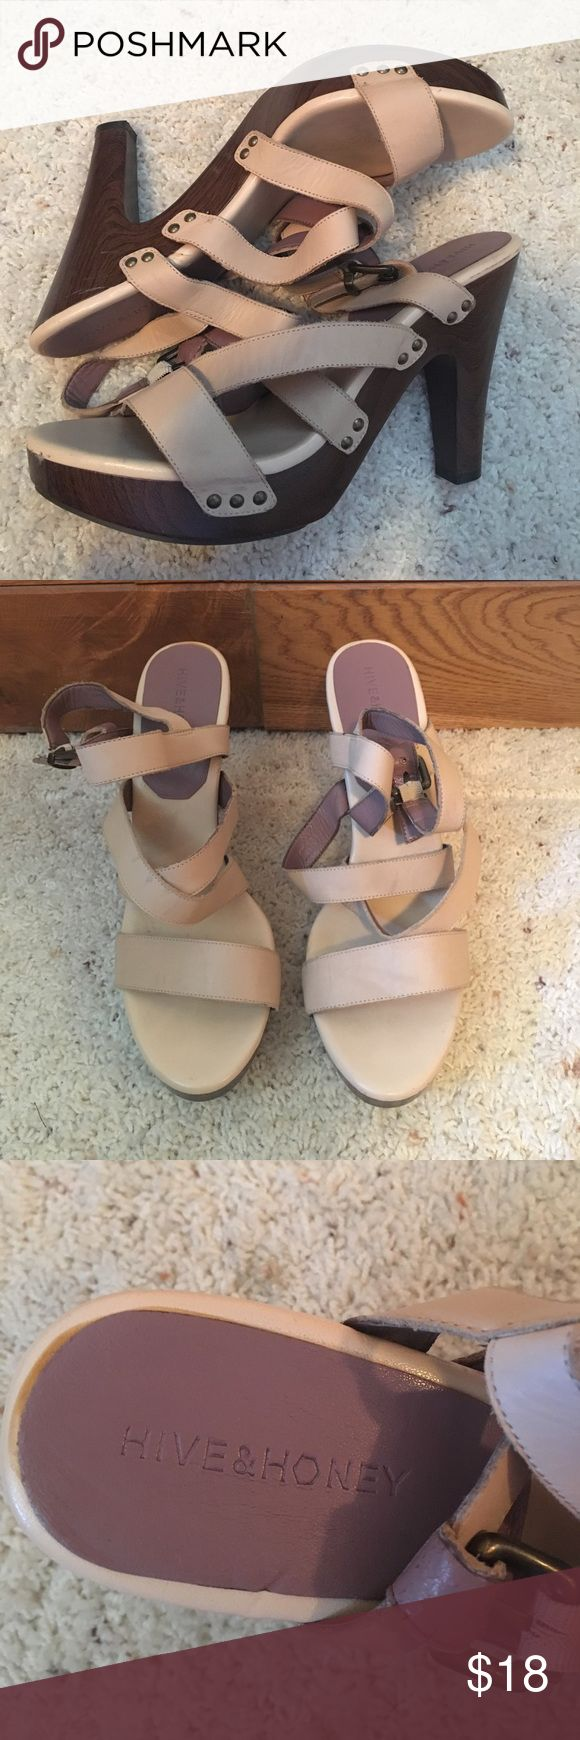 Hive and Honey Cream Strappy Heels Hive and Honey cream strappy heels size 10. In good condition but you can see a little wear on the shoes. Hive & Honey Shoes Sandals